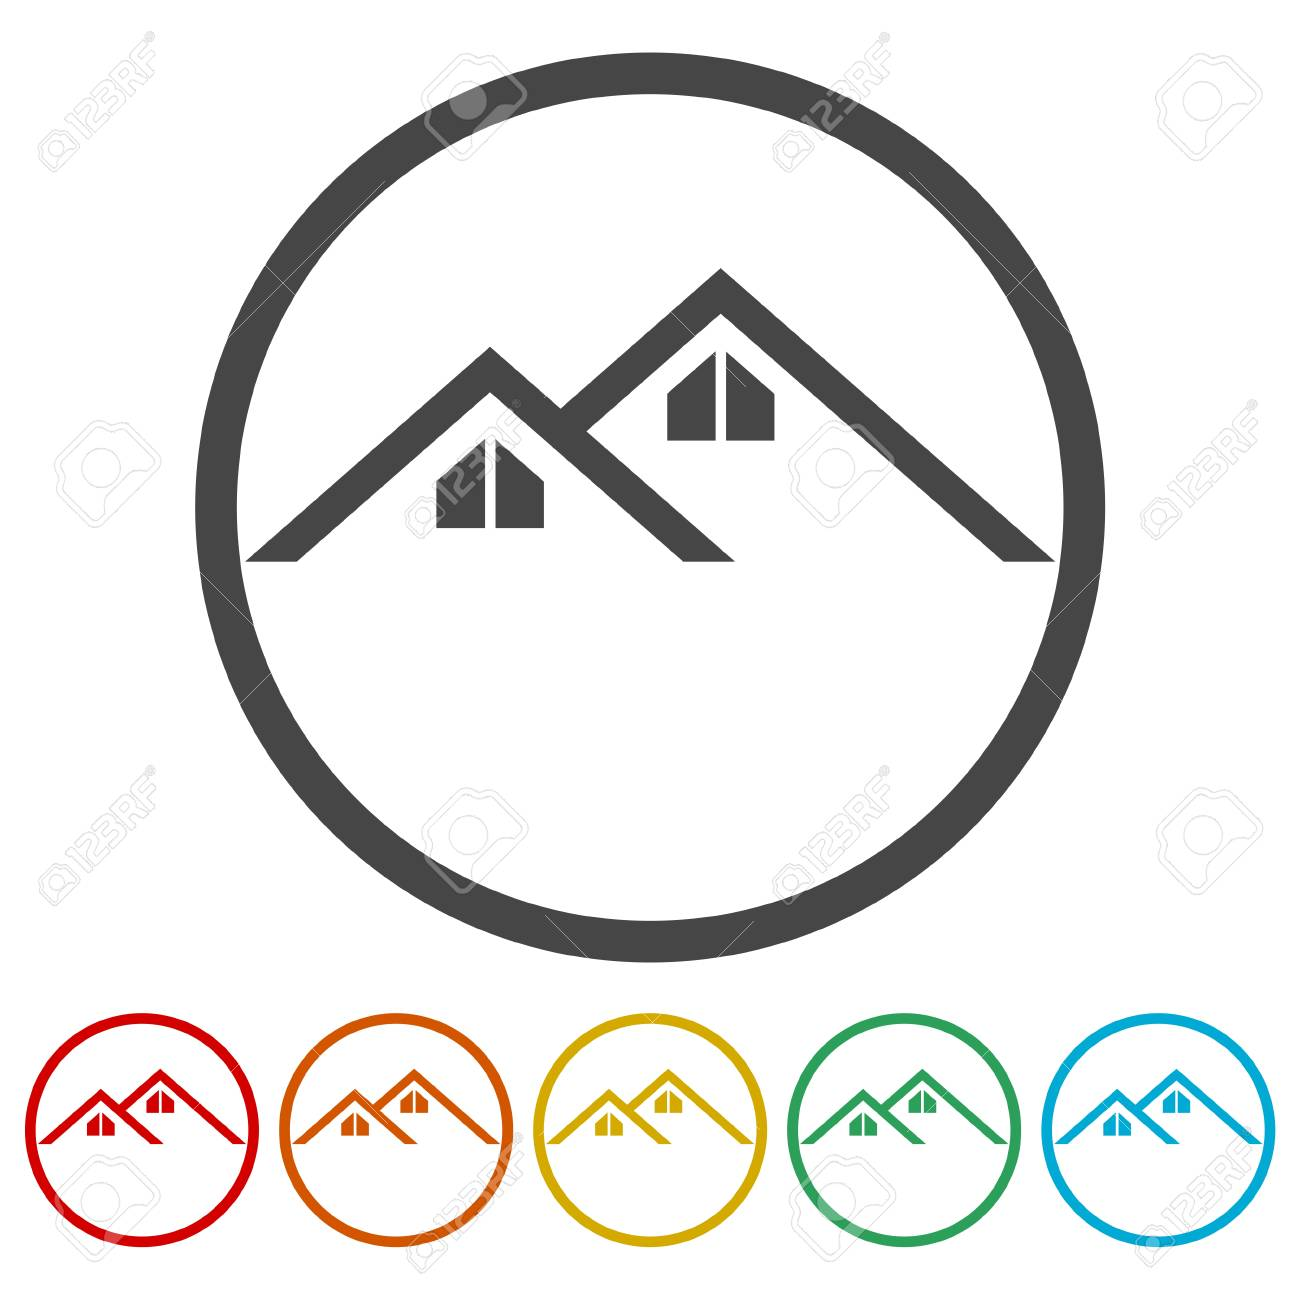 Home Roof Icon Royalty Free Cliparts Vectors And Stock